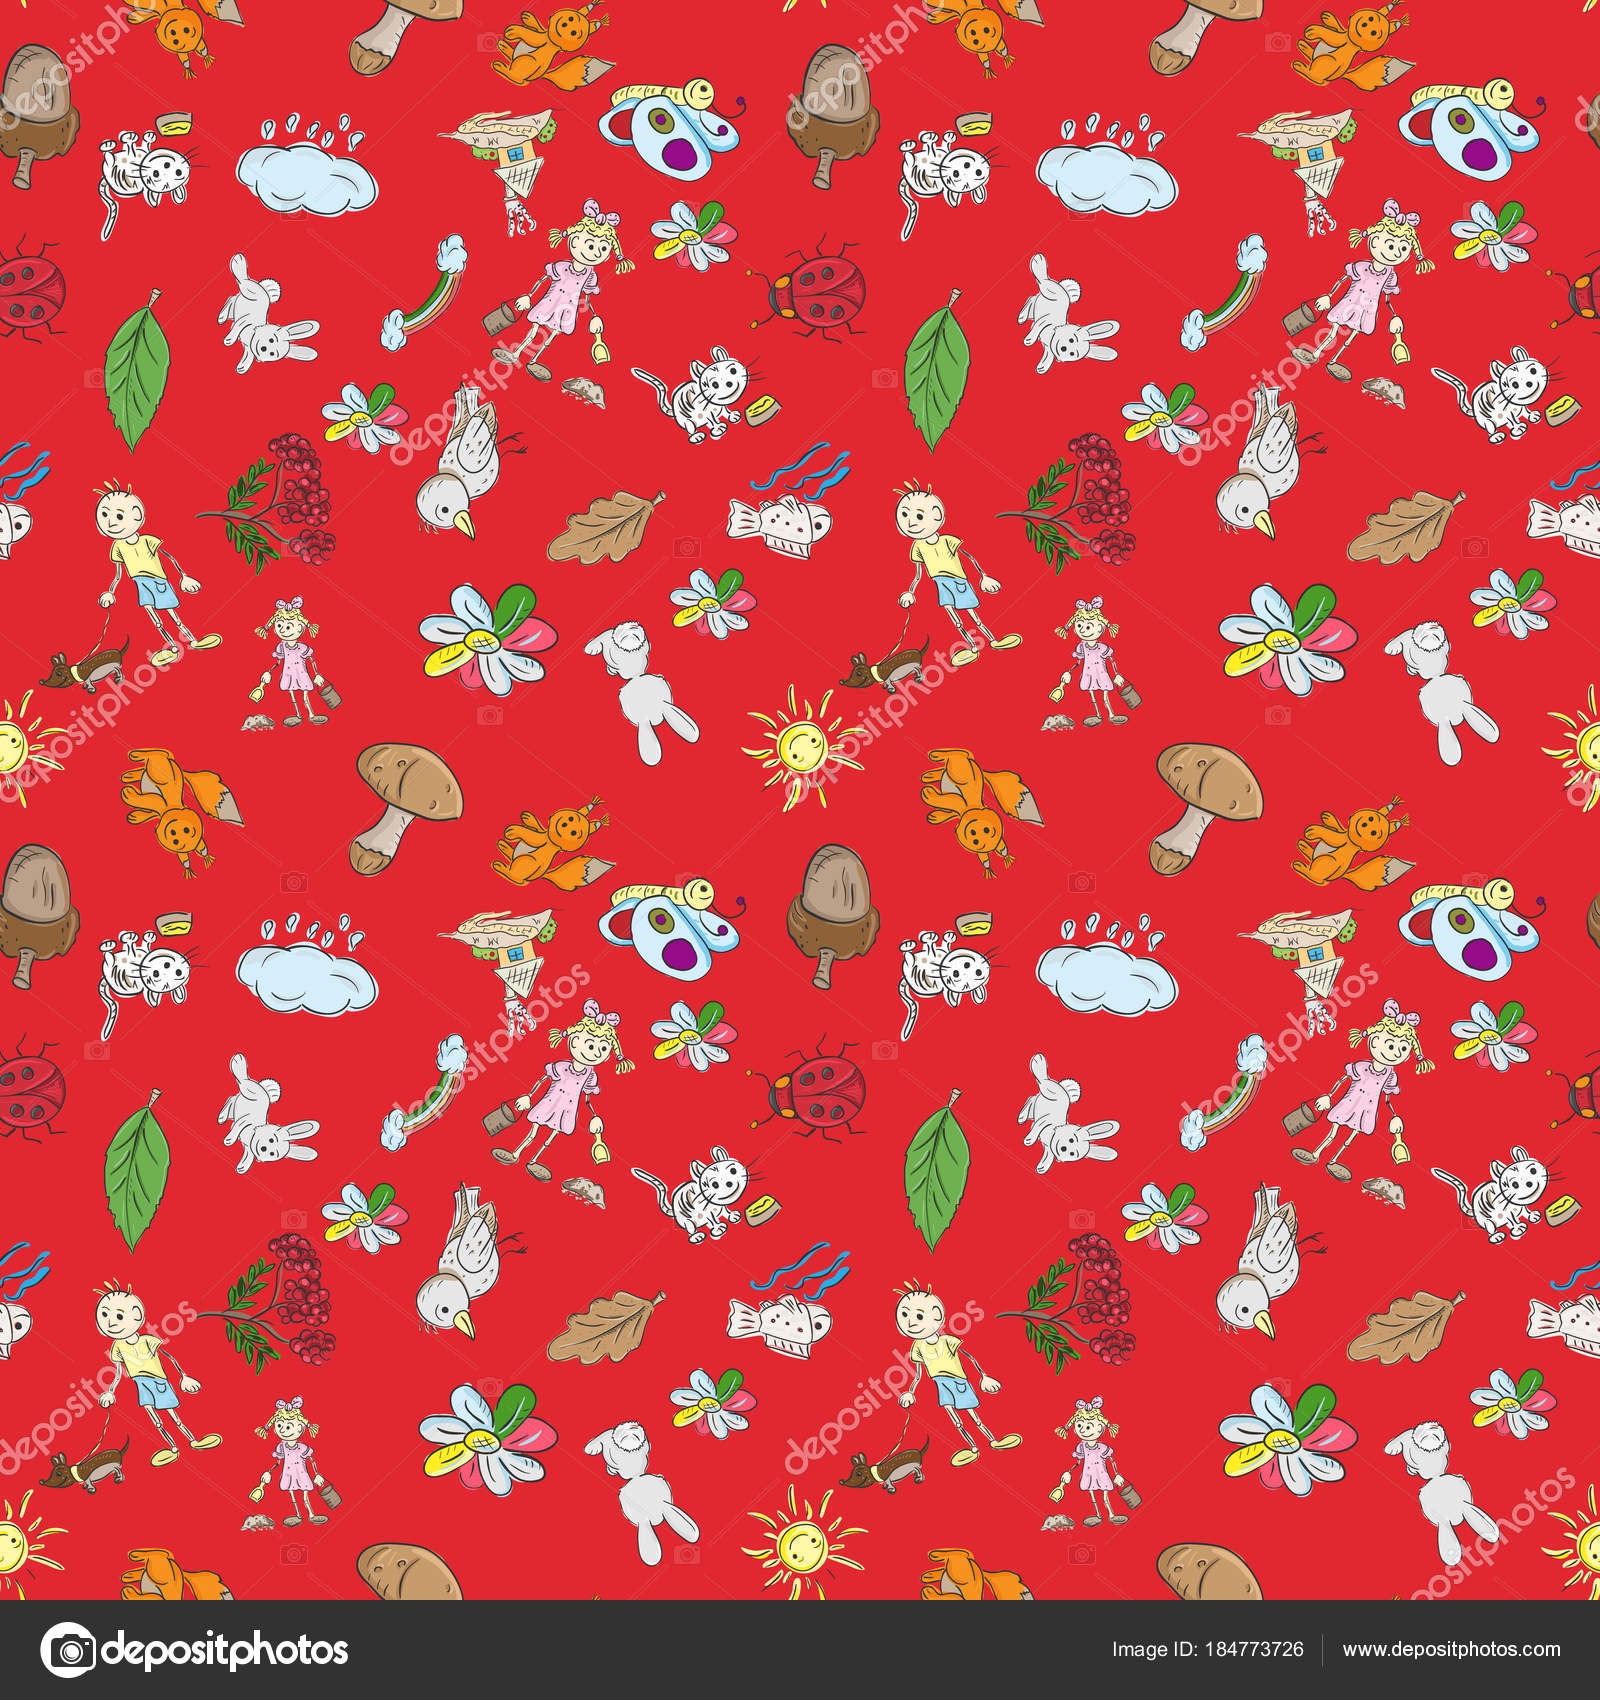 Childrens Color Seamless Pattern In Sketch Style Red Background Stock Vector C Svarog19801 184773726